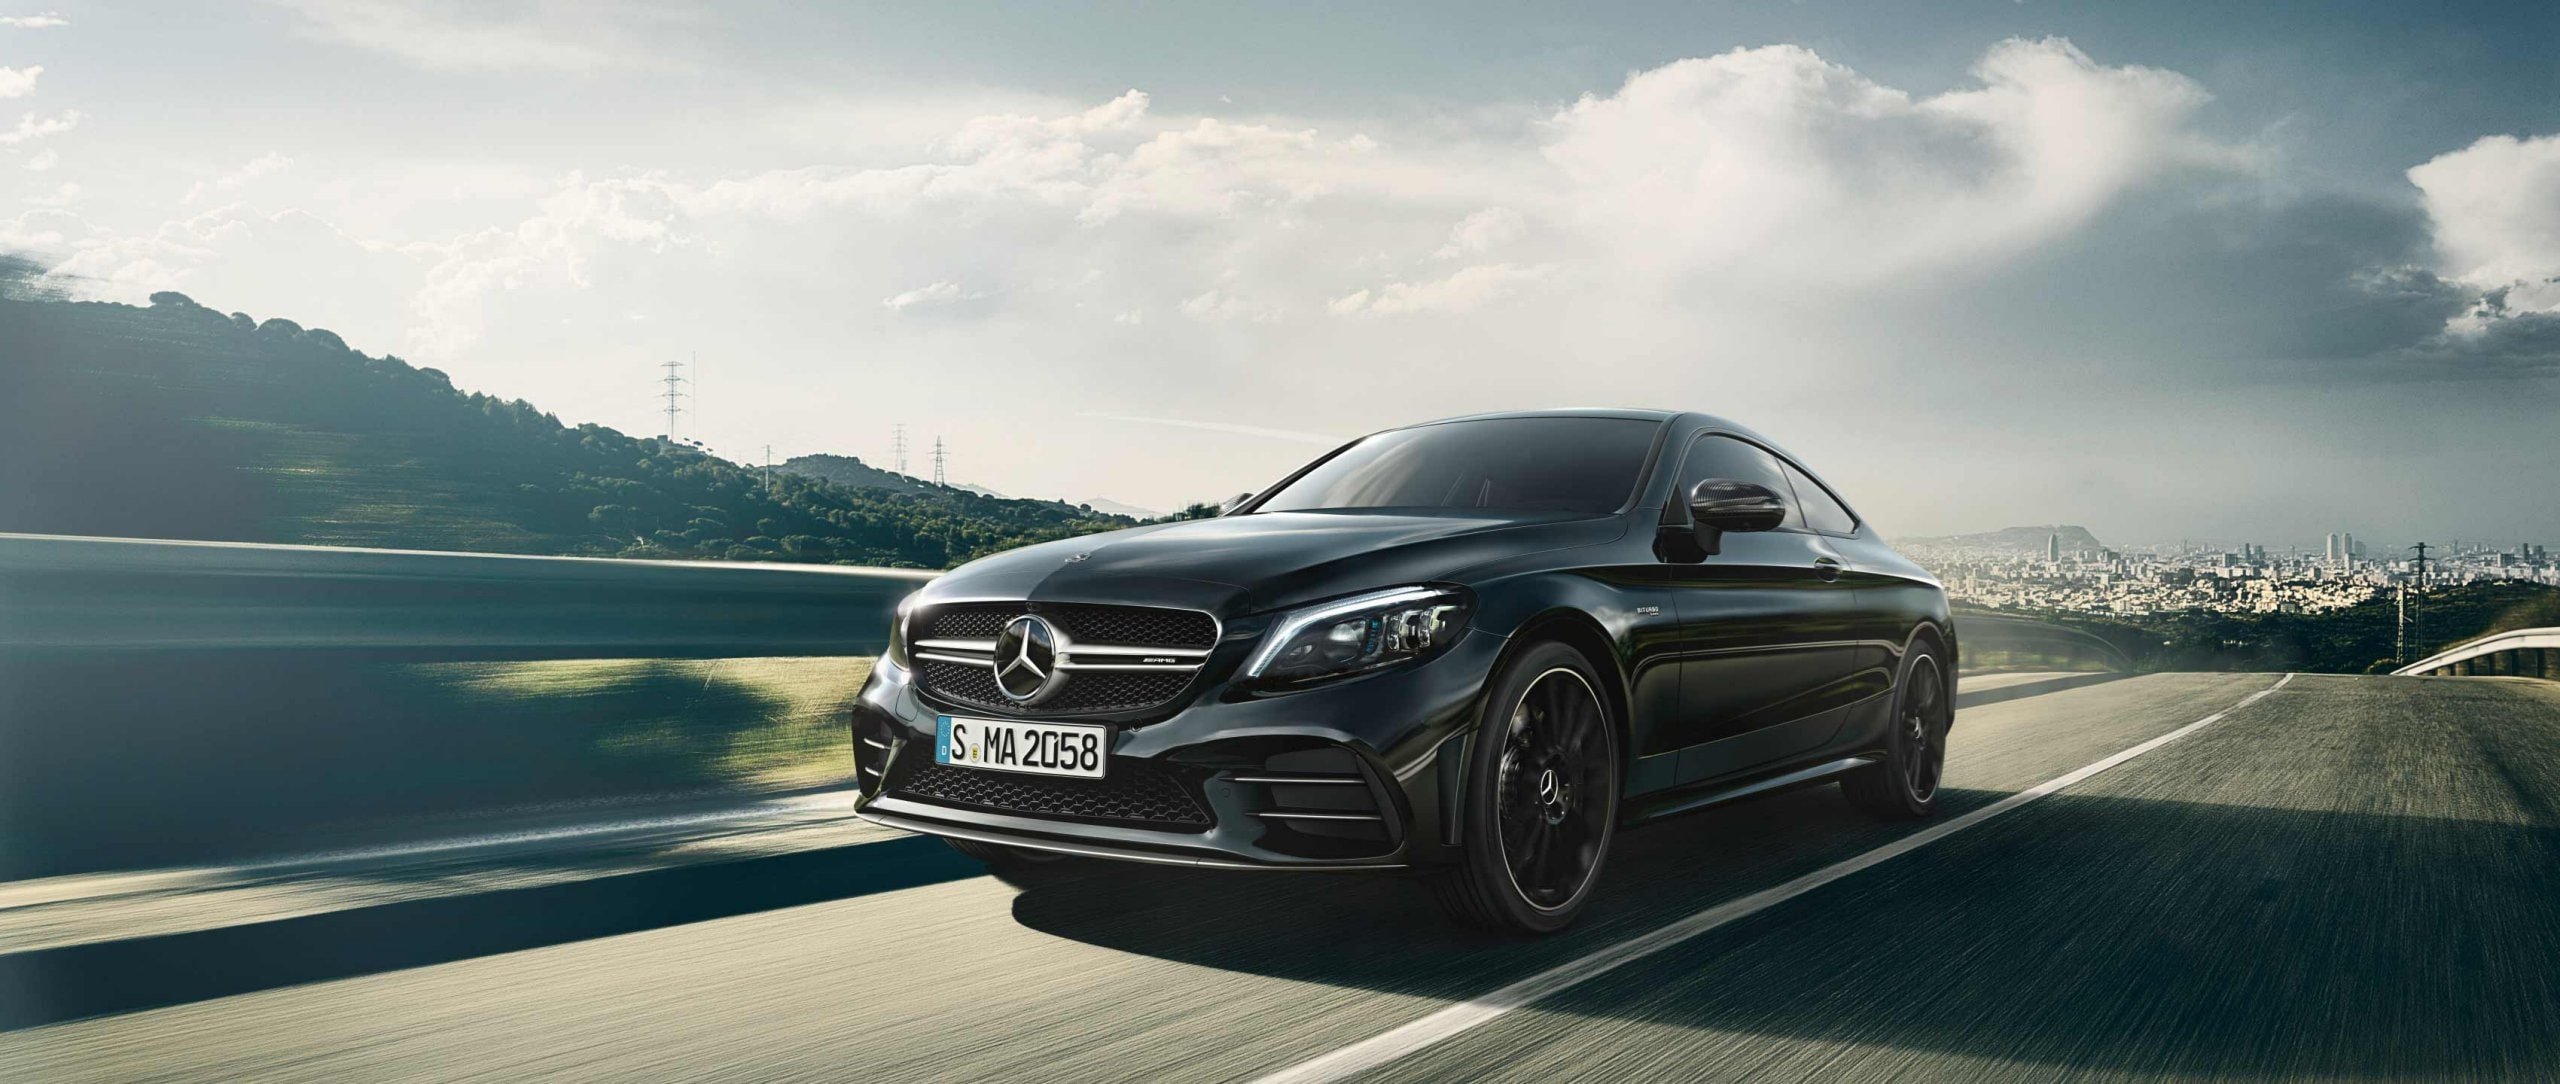 2018er Mercedes-AMG C 43 4MATIC Coupé (C 205) MoPf mit AMG Carbon-Paket II in Obsidianschwarz metallic.